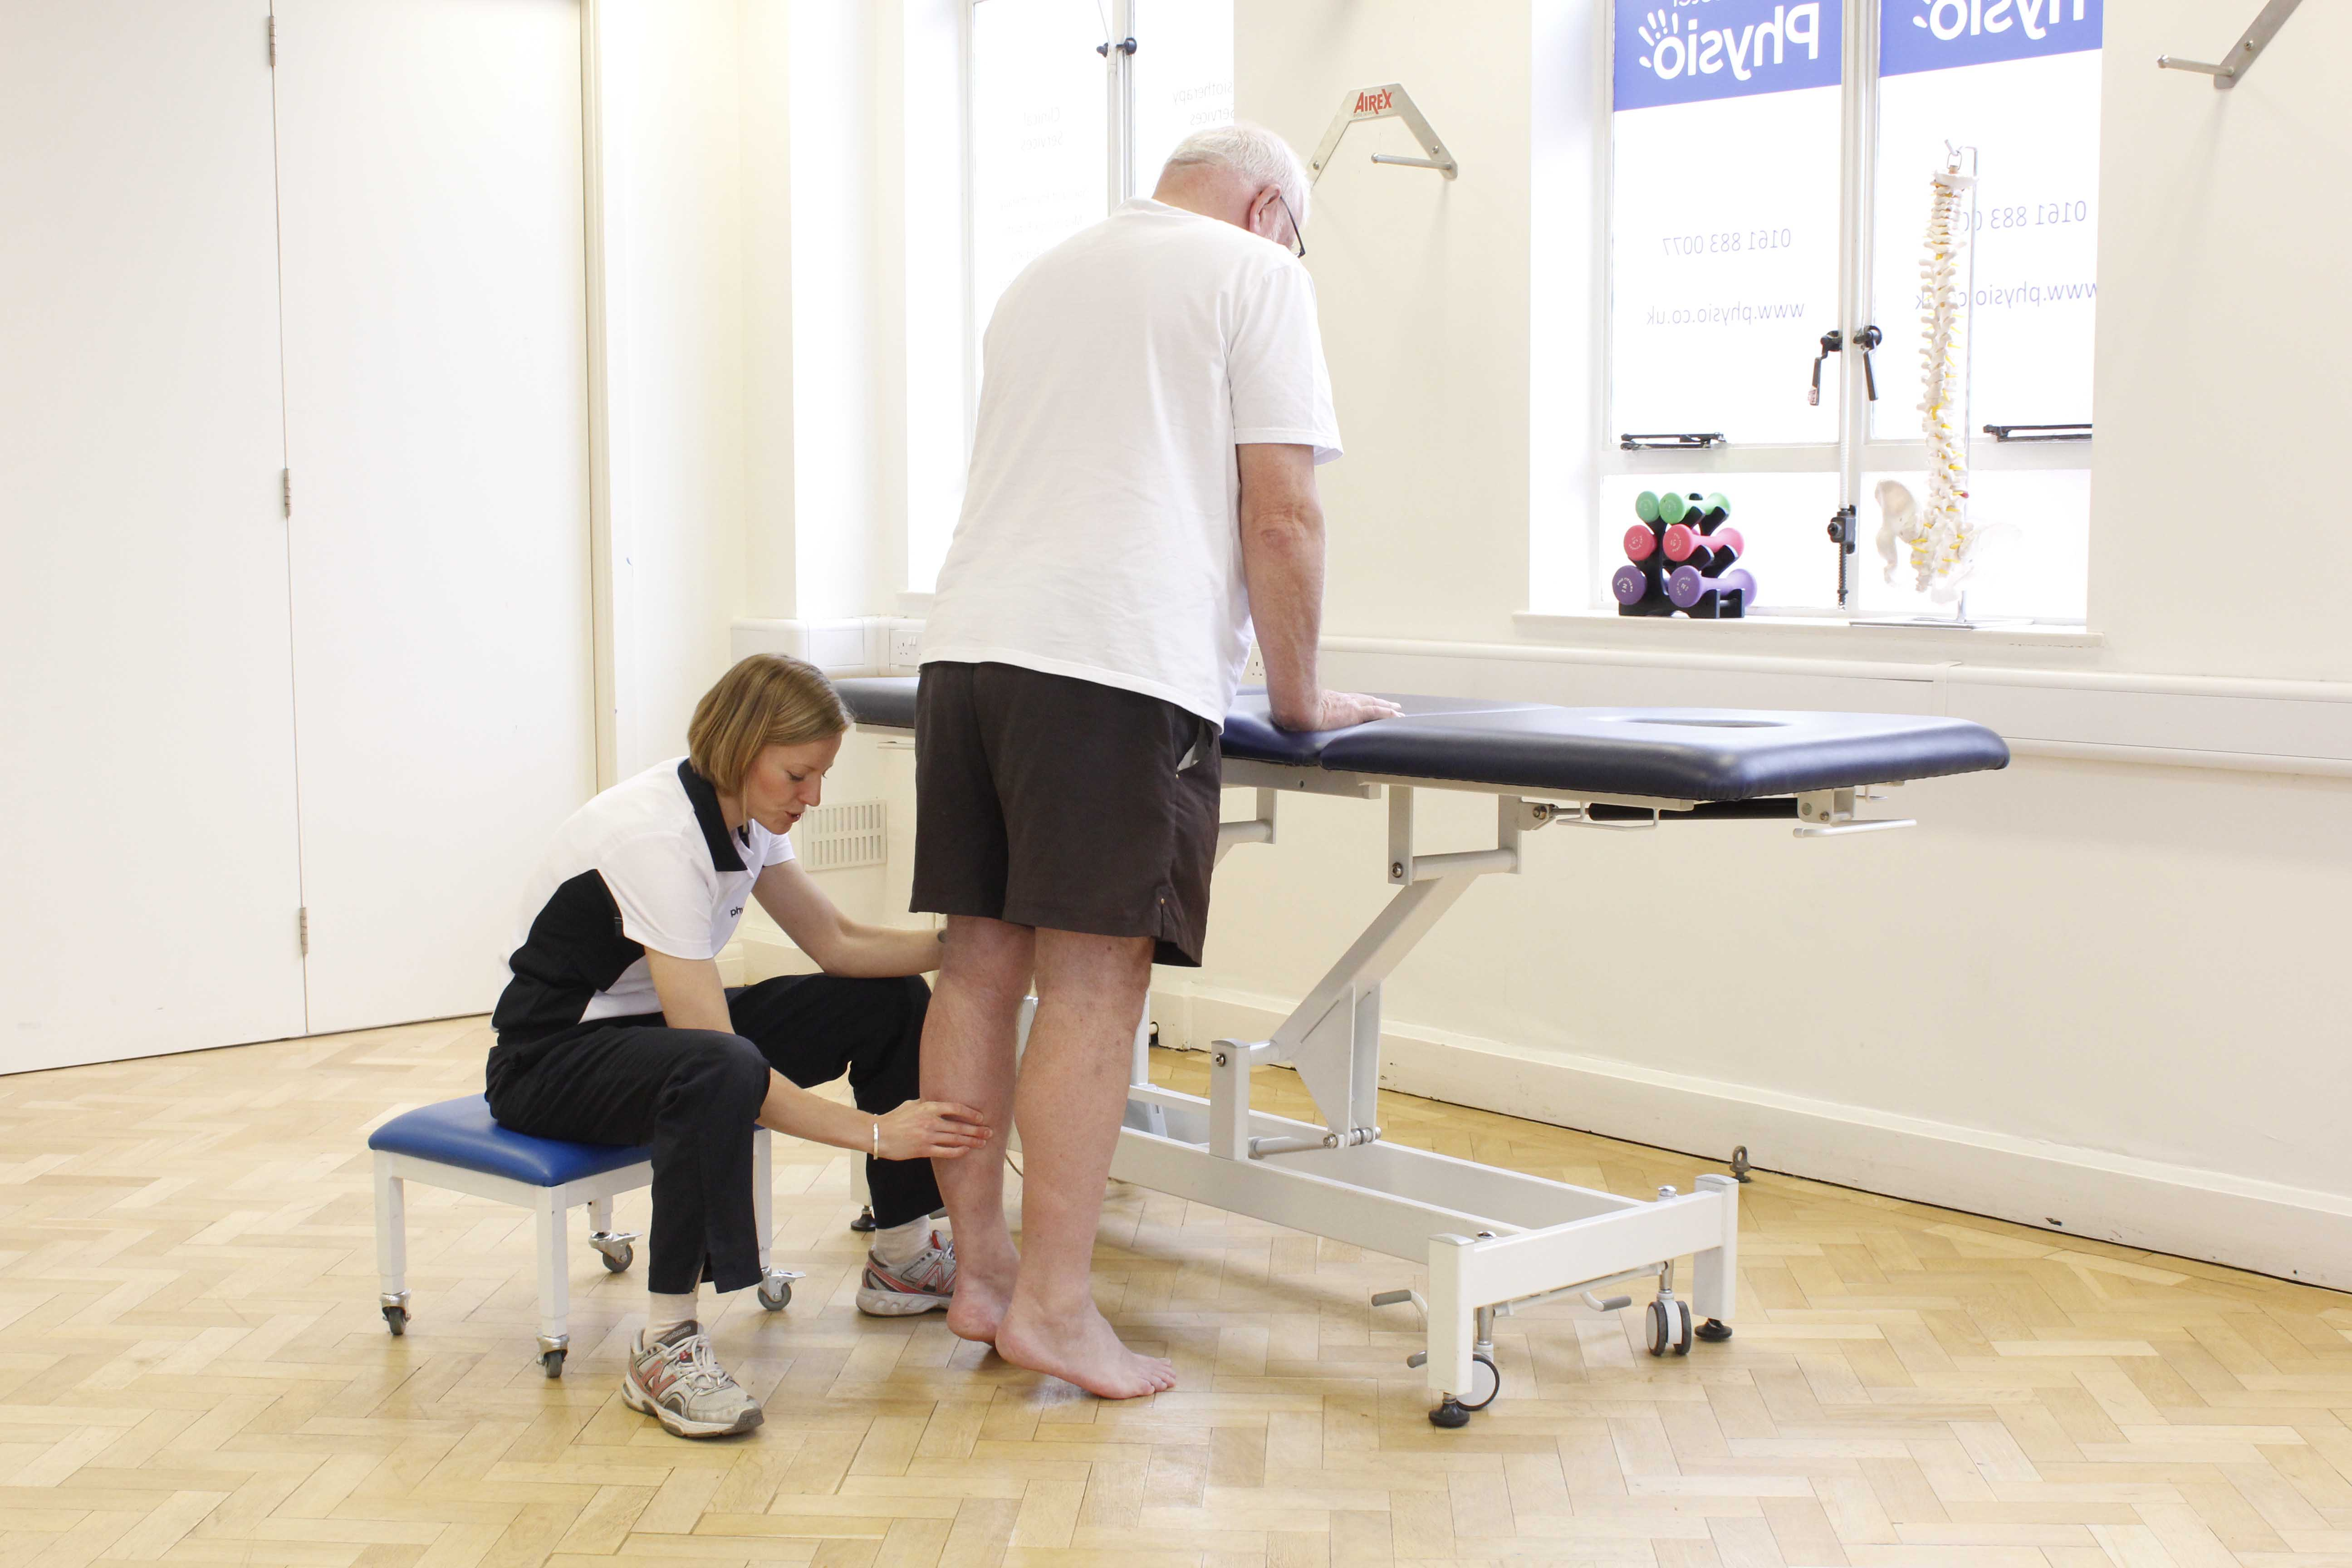 Progressive strengthening exercises for the foot and ankle, supervised by specialist physiotherapist